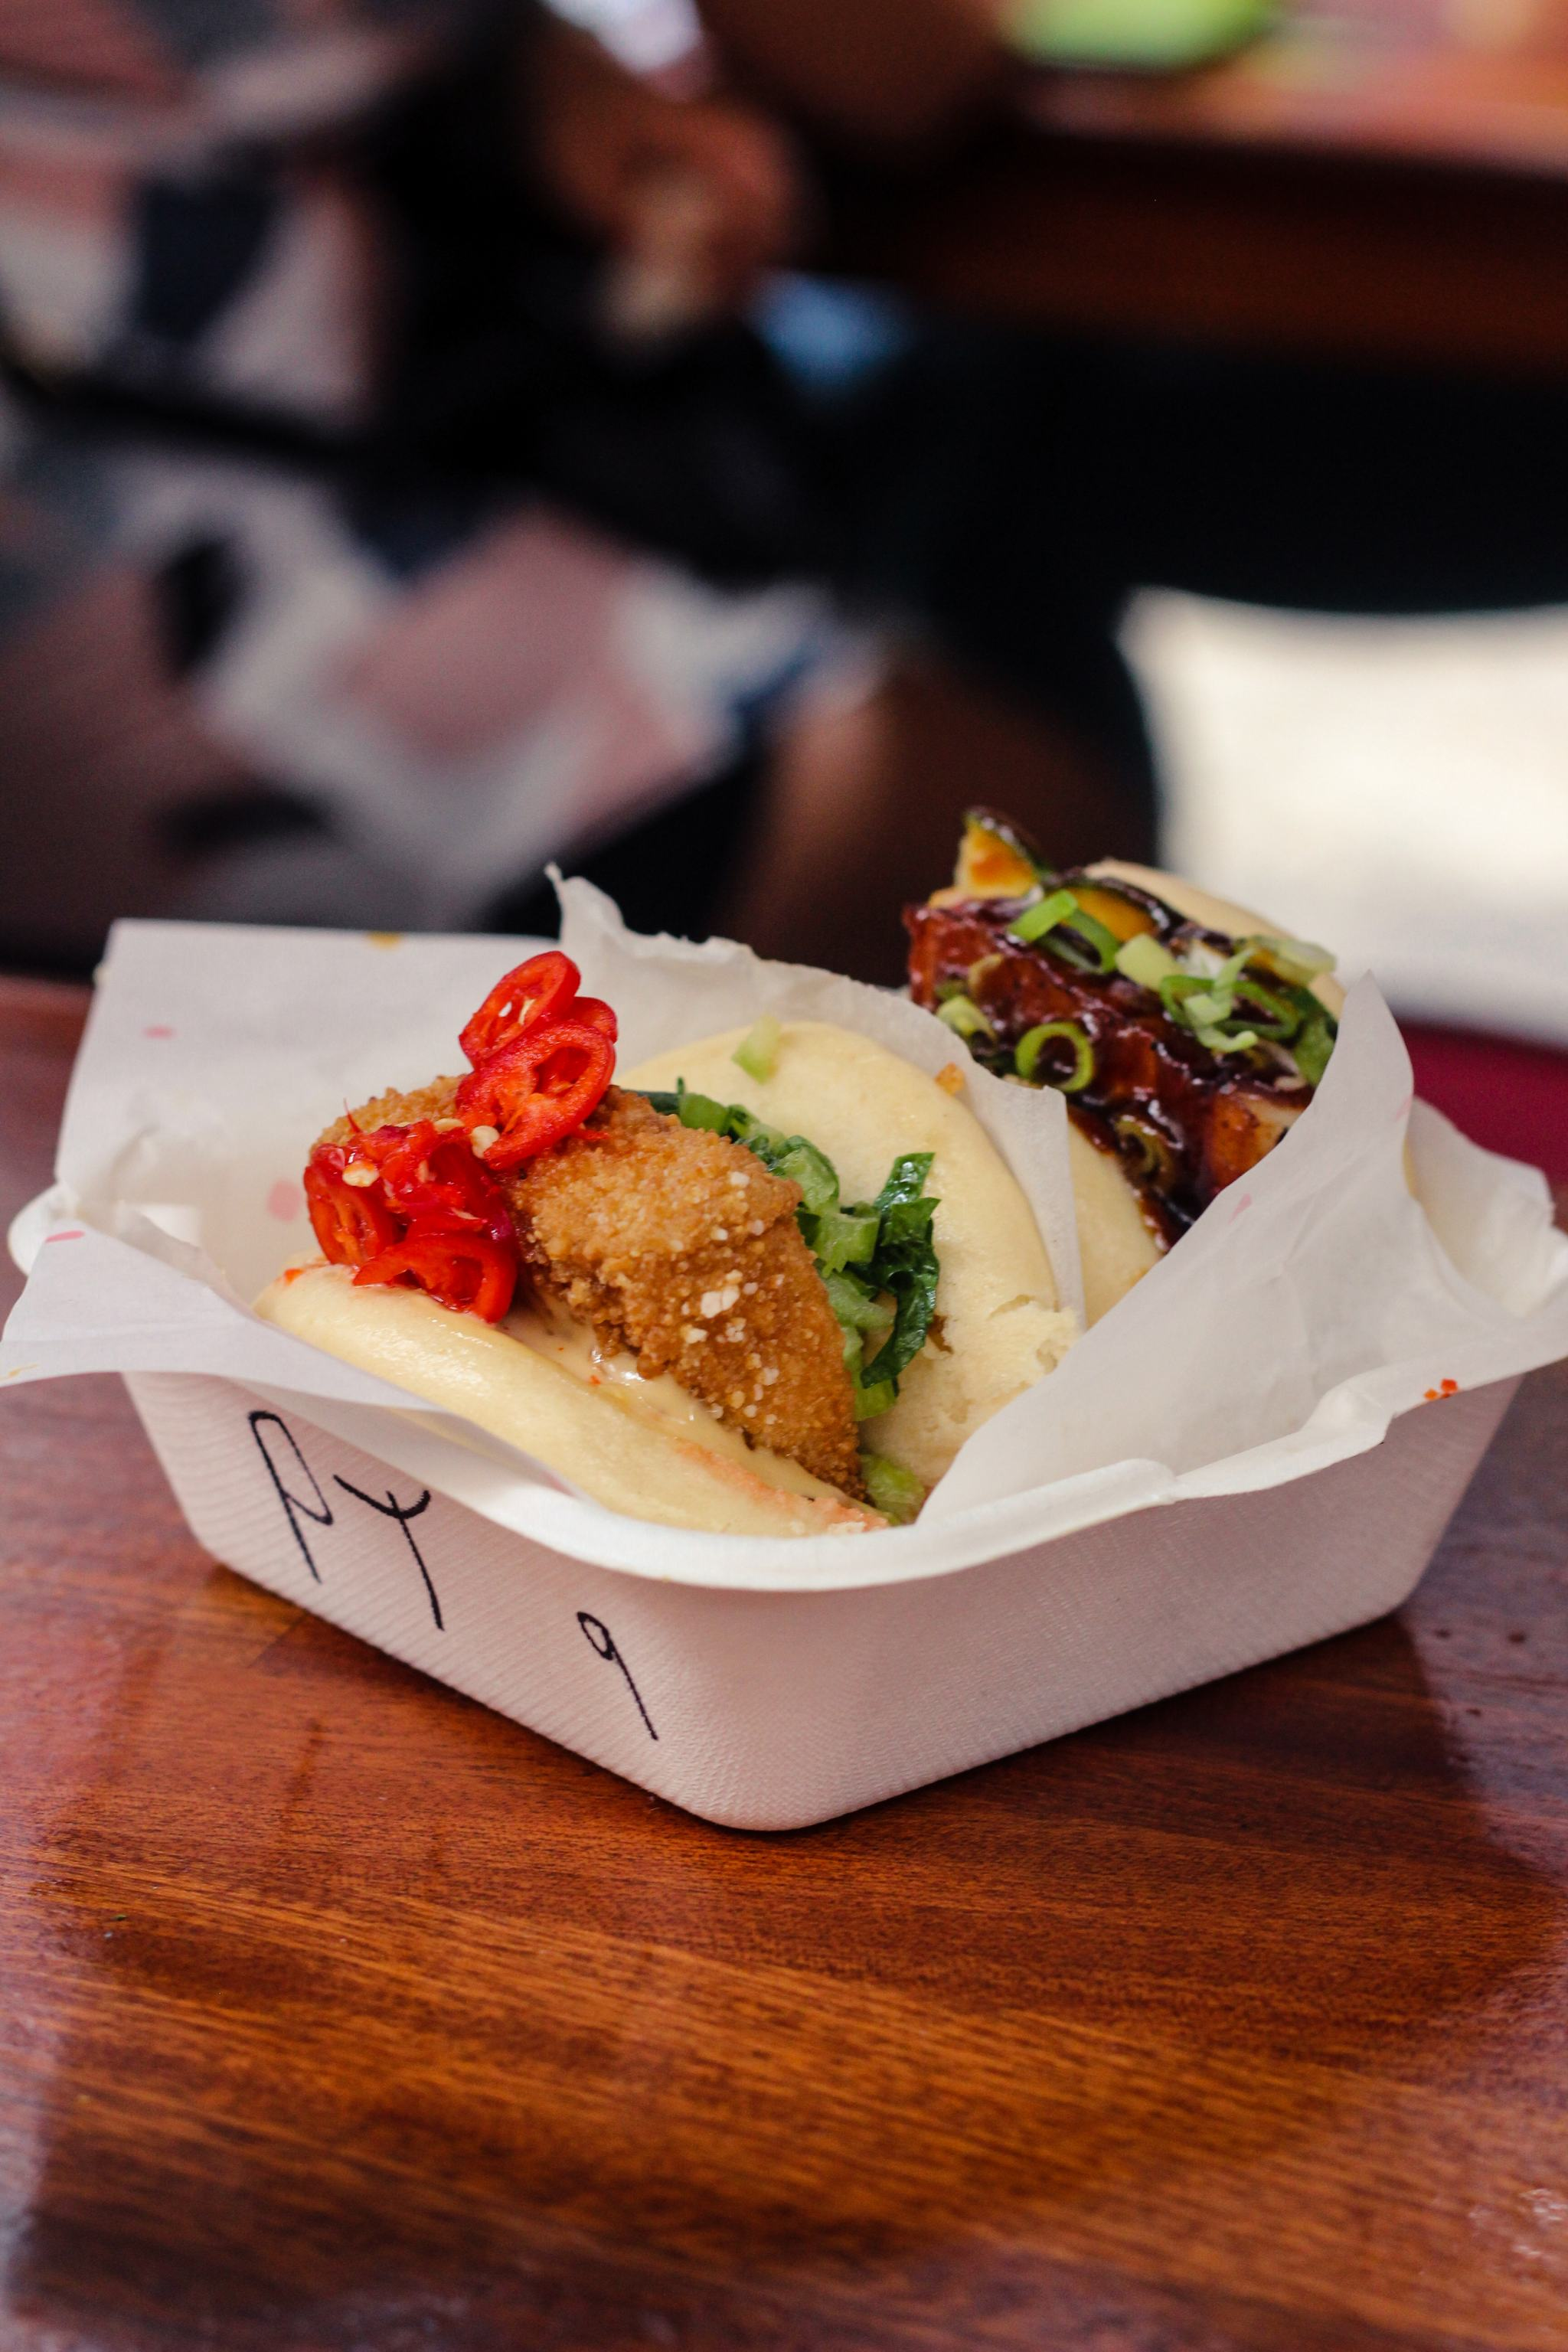 Steamed-Buns-Dinerama-Shoreditch